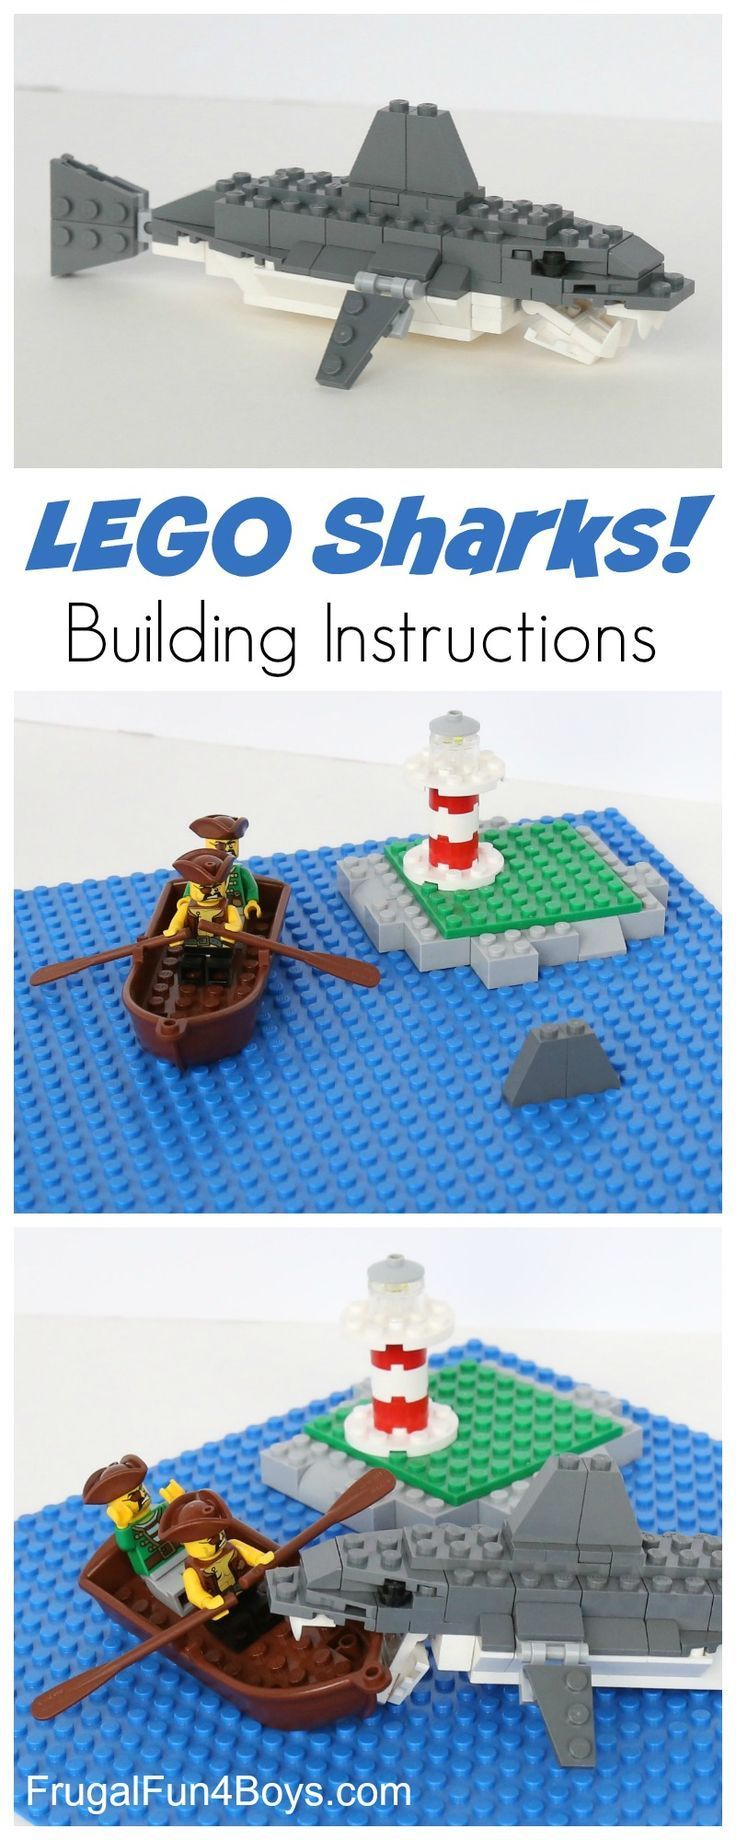 How To Build An Awesome Lego Shark Awesome Lego Lego Building And